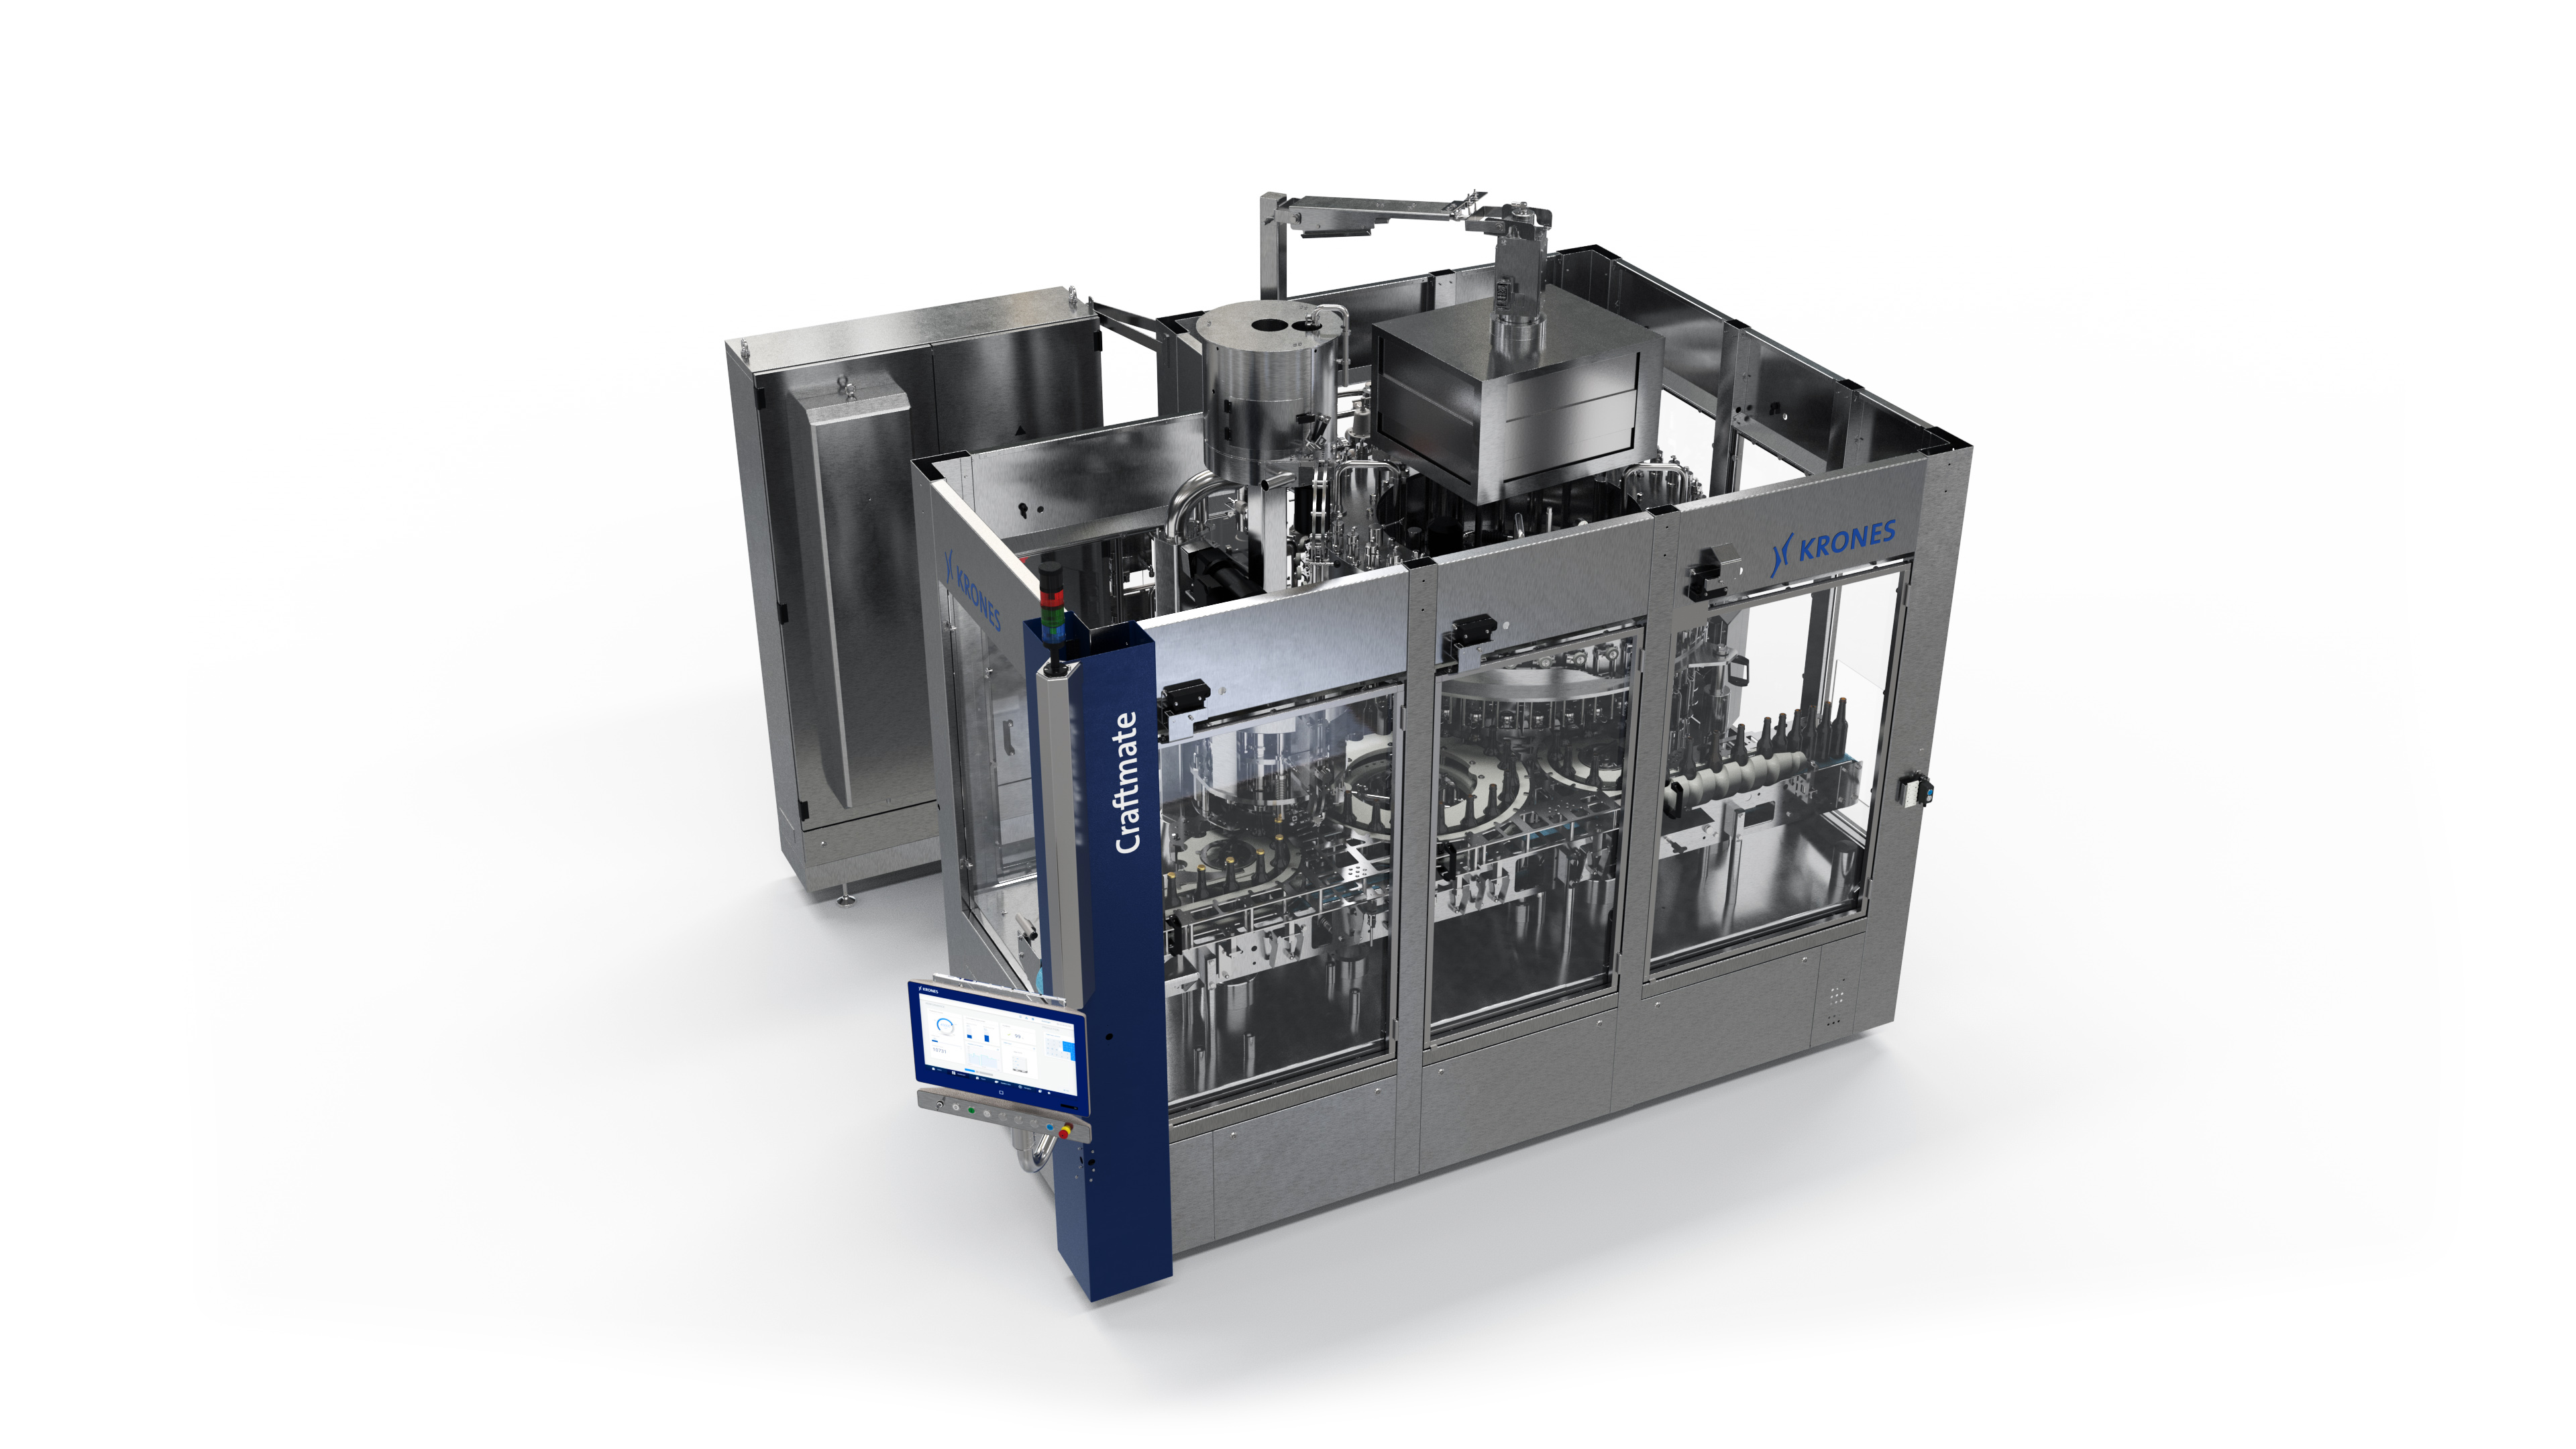 The new Craftmate G can handle up to 24,000 glass bottles per hour. (Picture: Krones)